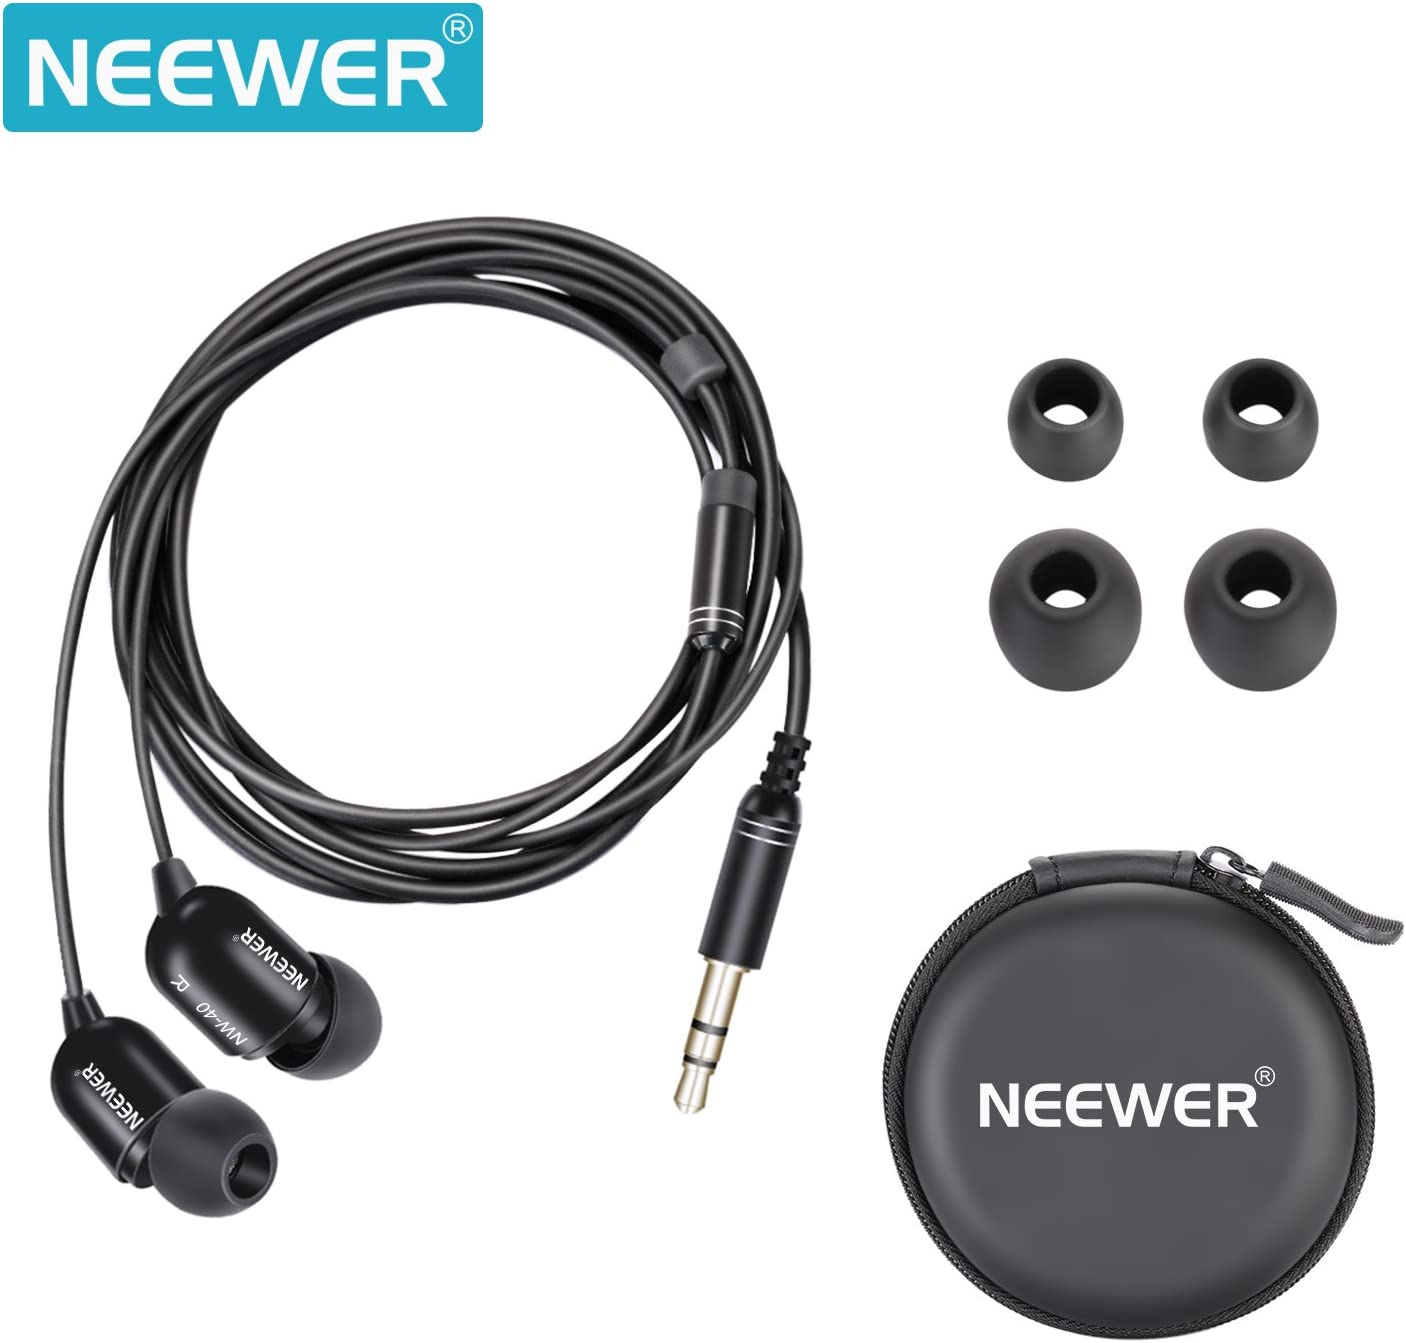 Neewer Universal Running Sport Headphones In Ear Noise Isolating Wired Earphones with 3 Pairs of Earbuds for Listening to Music, Online Chatting, Jogging Gym for iPhone Samsung iPod, Black NW-40